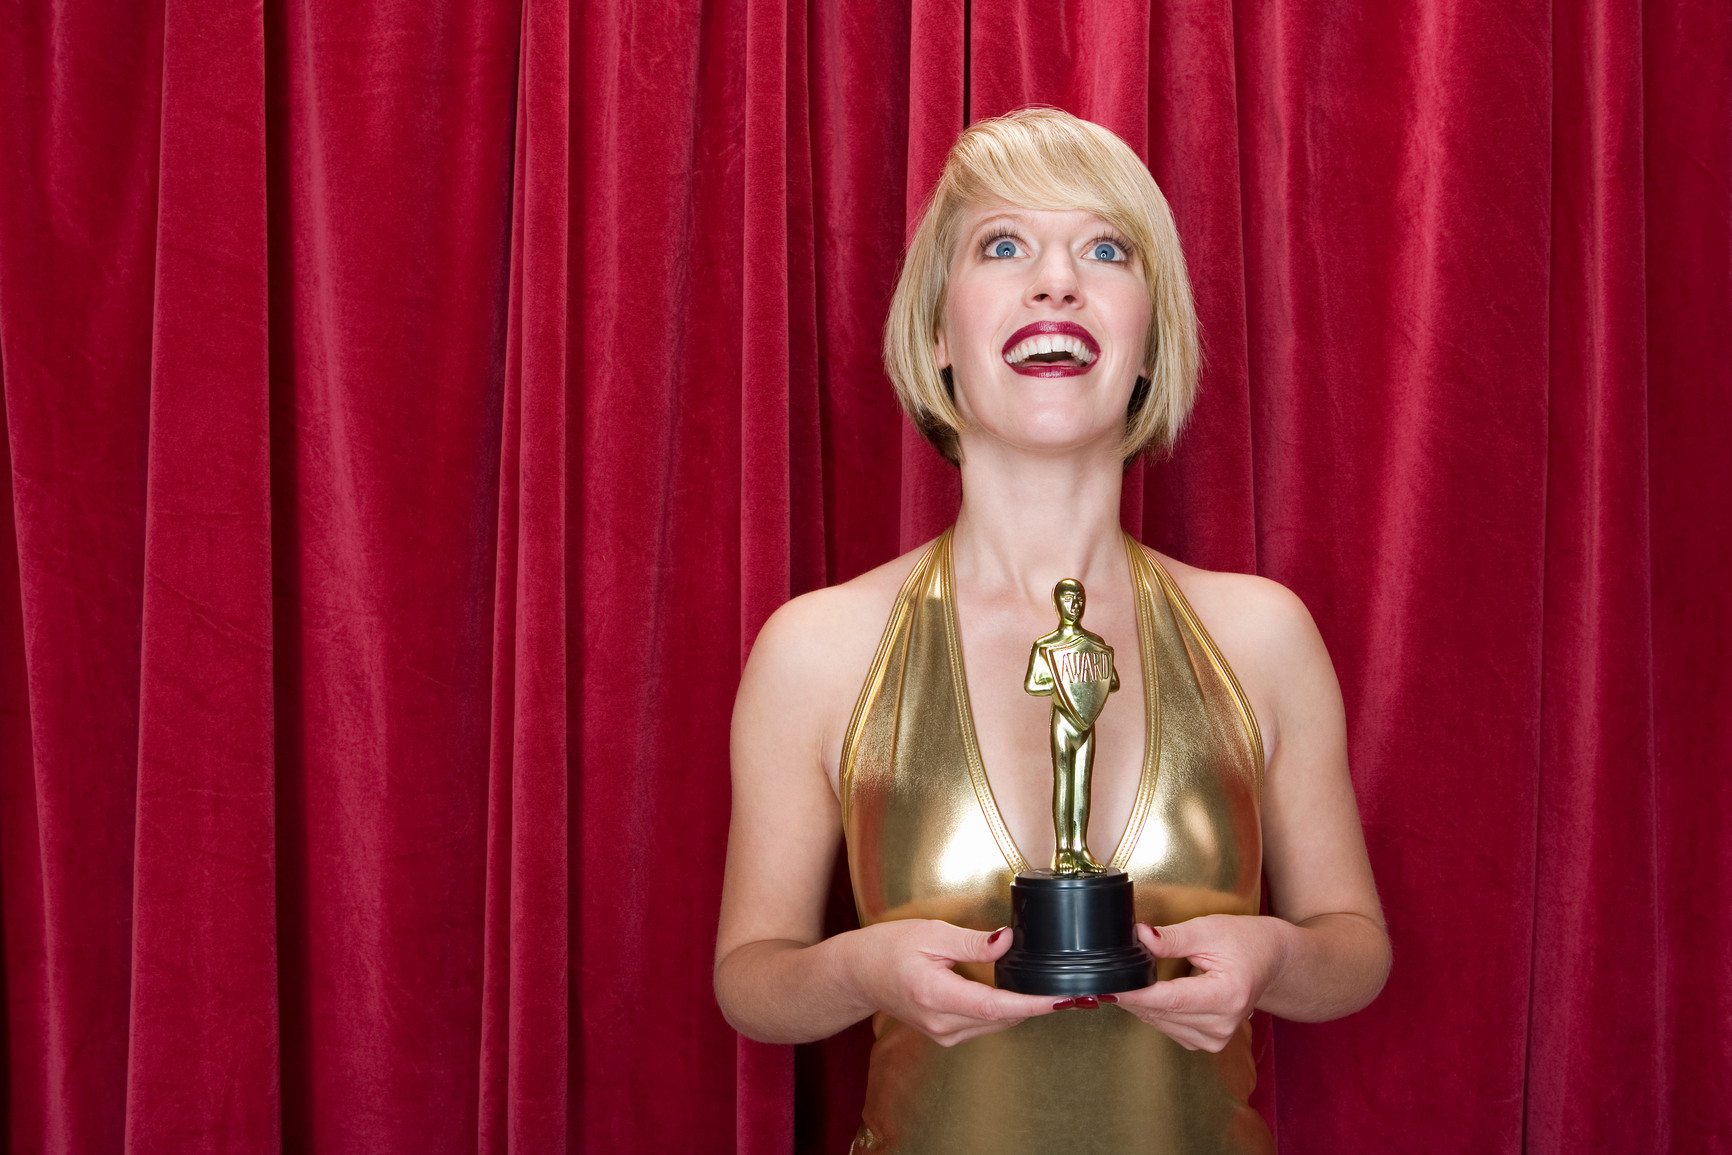 Actress holding an award